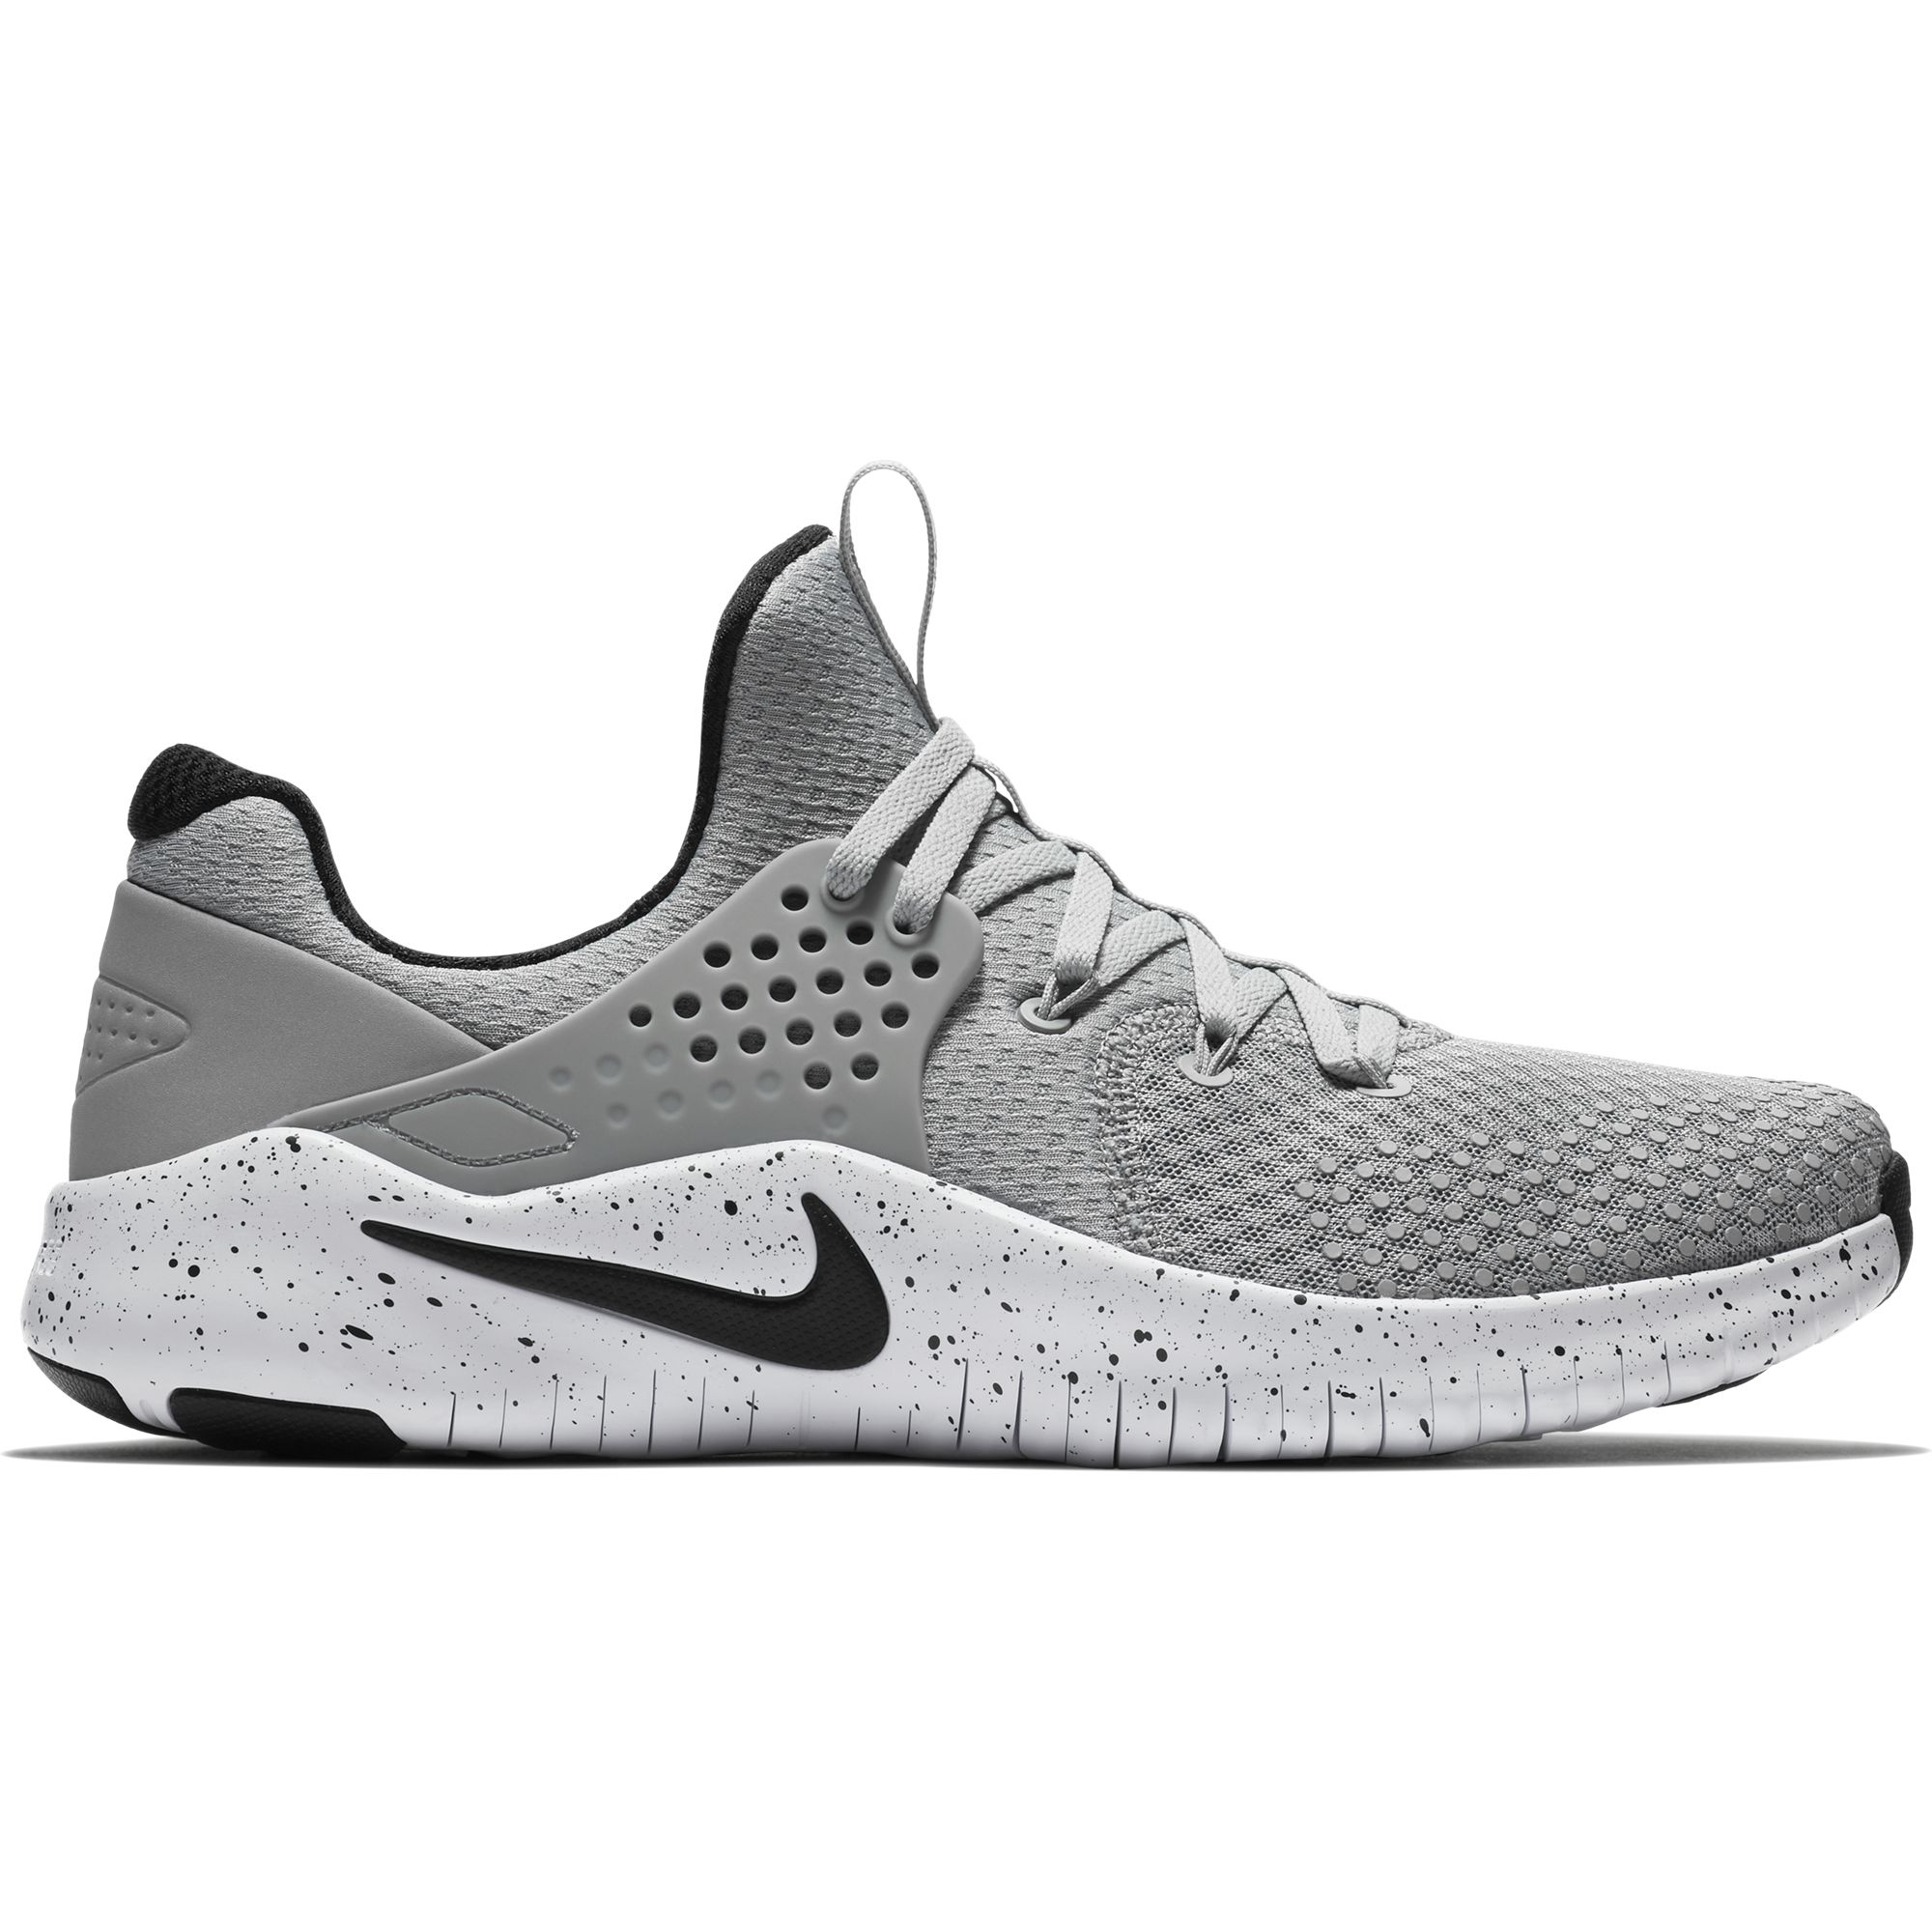 0e9d3ea94b82 Men s Nike Free TR V8 Training Shoe - Sieverts Sporting Goods